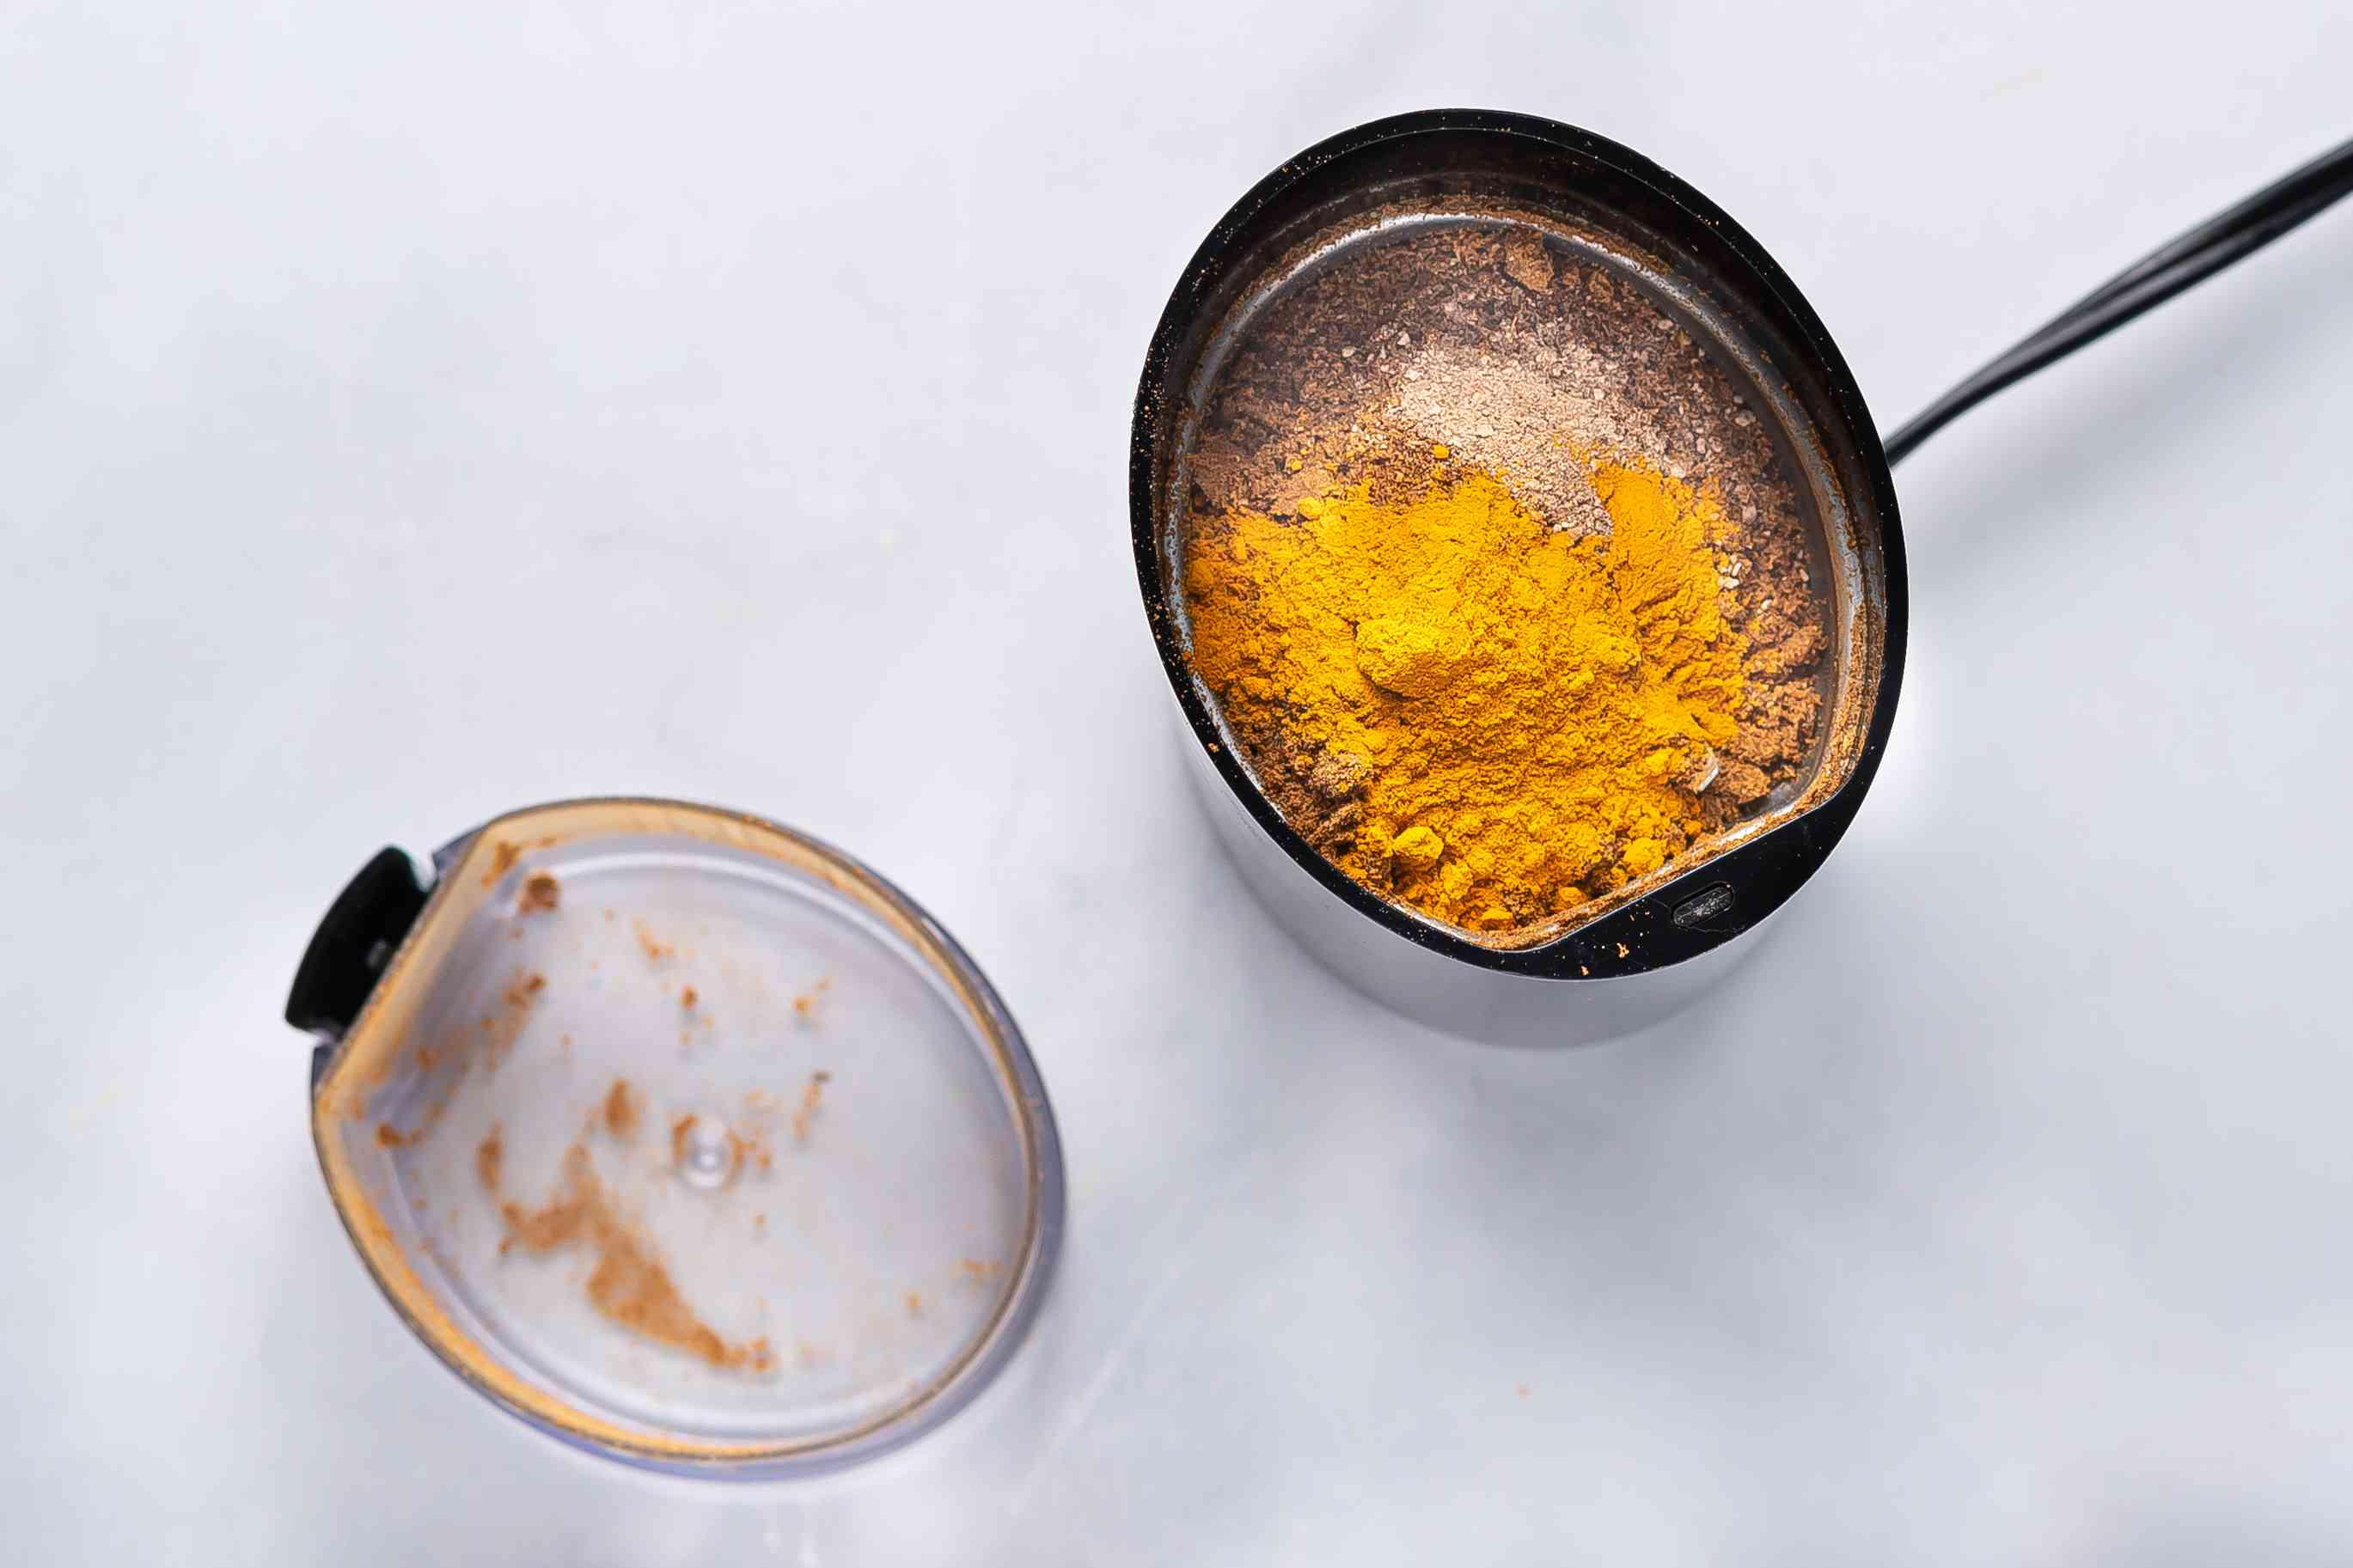 Mix in the turmeric and nutmeg into the spice mixture